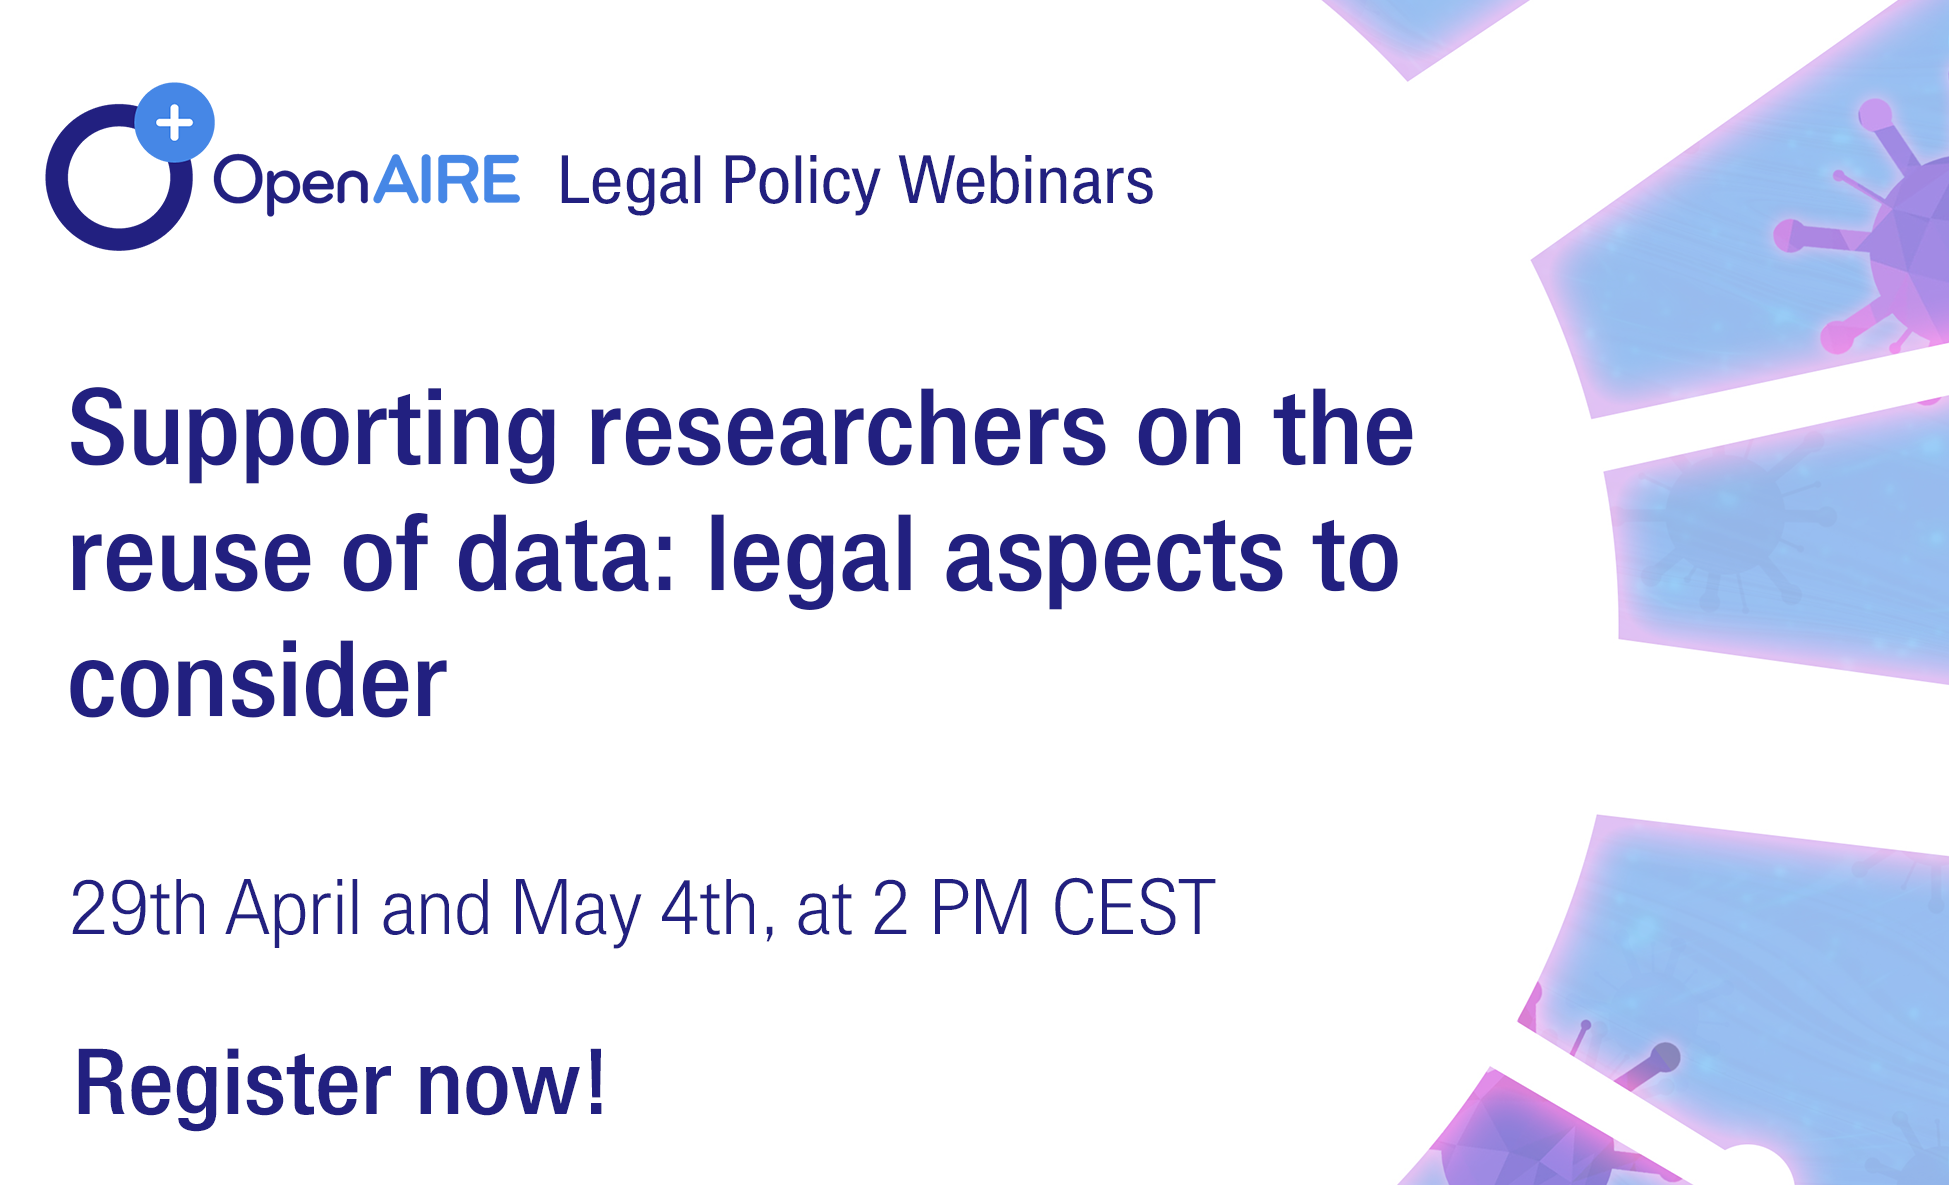 OpenAIRE Legal Policy Webinars